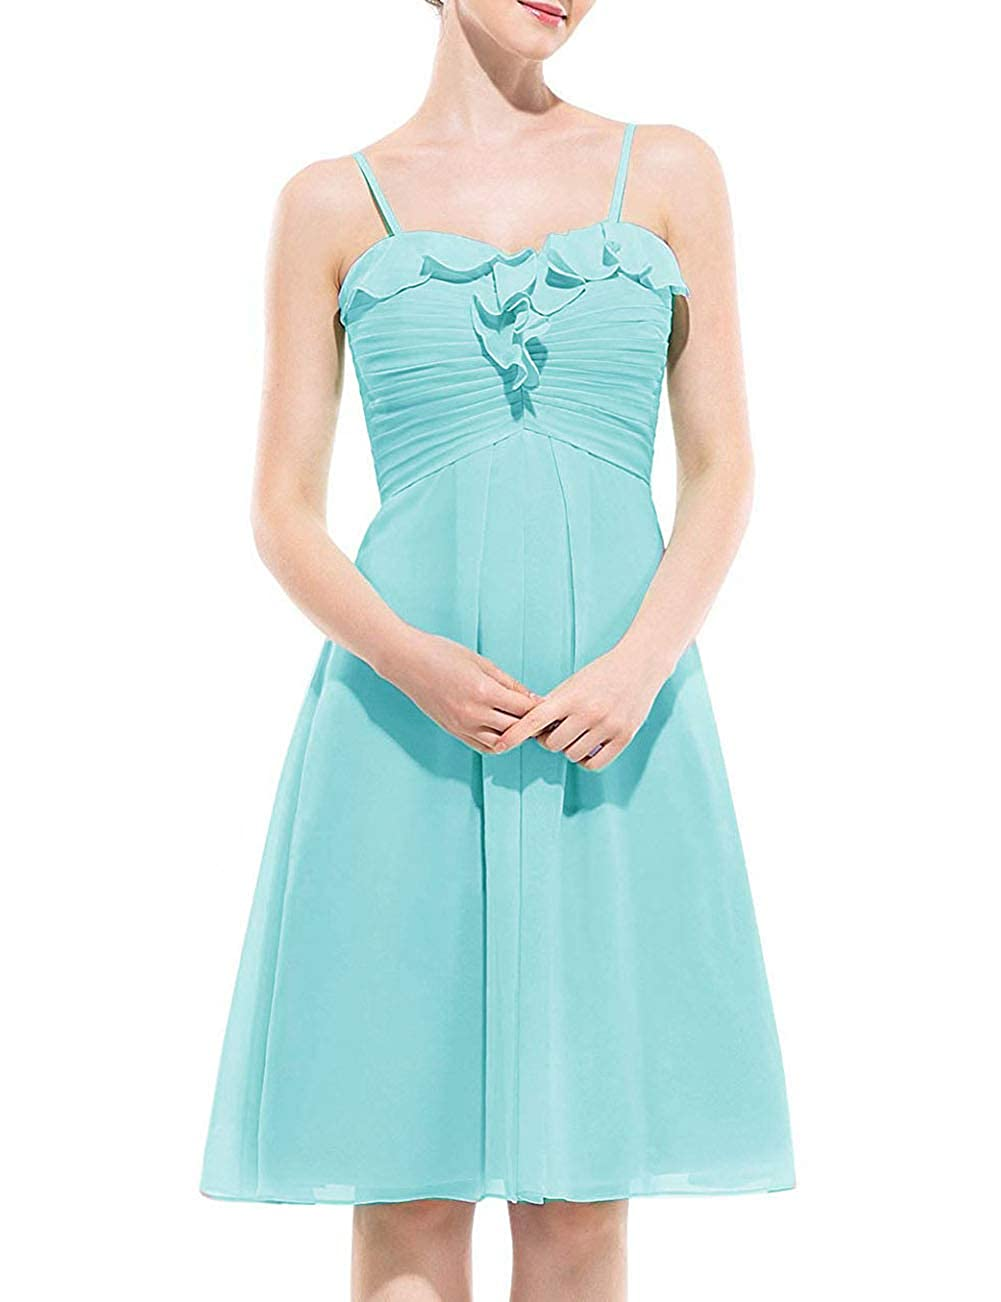 Ice bluee Uther Spaghetti Strap Bridesmaid Dress Short Homecoming Party Cocktail Dresses